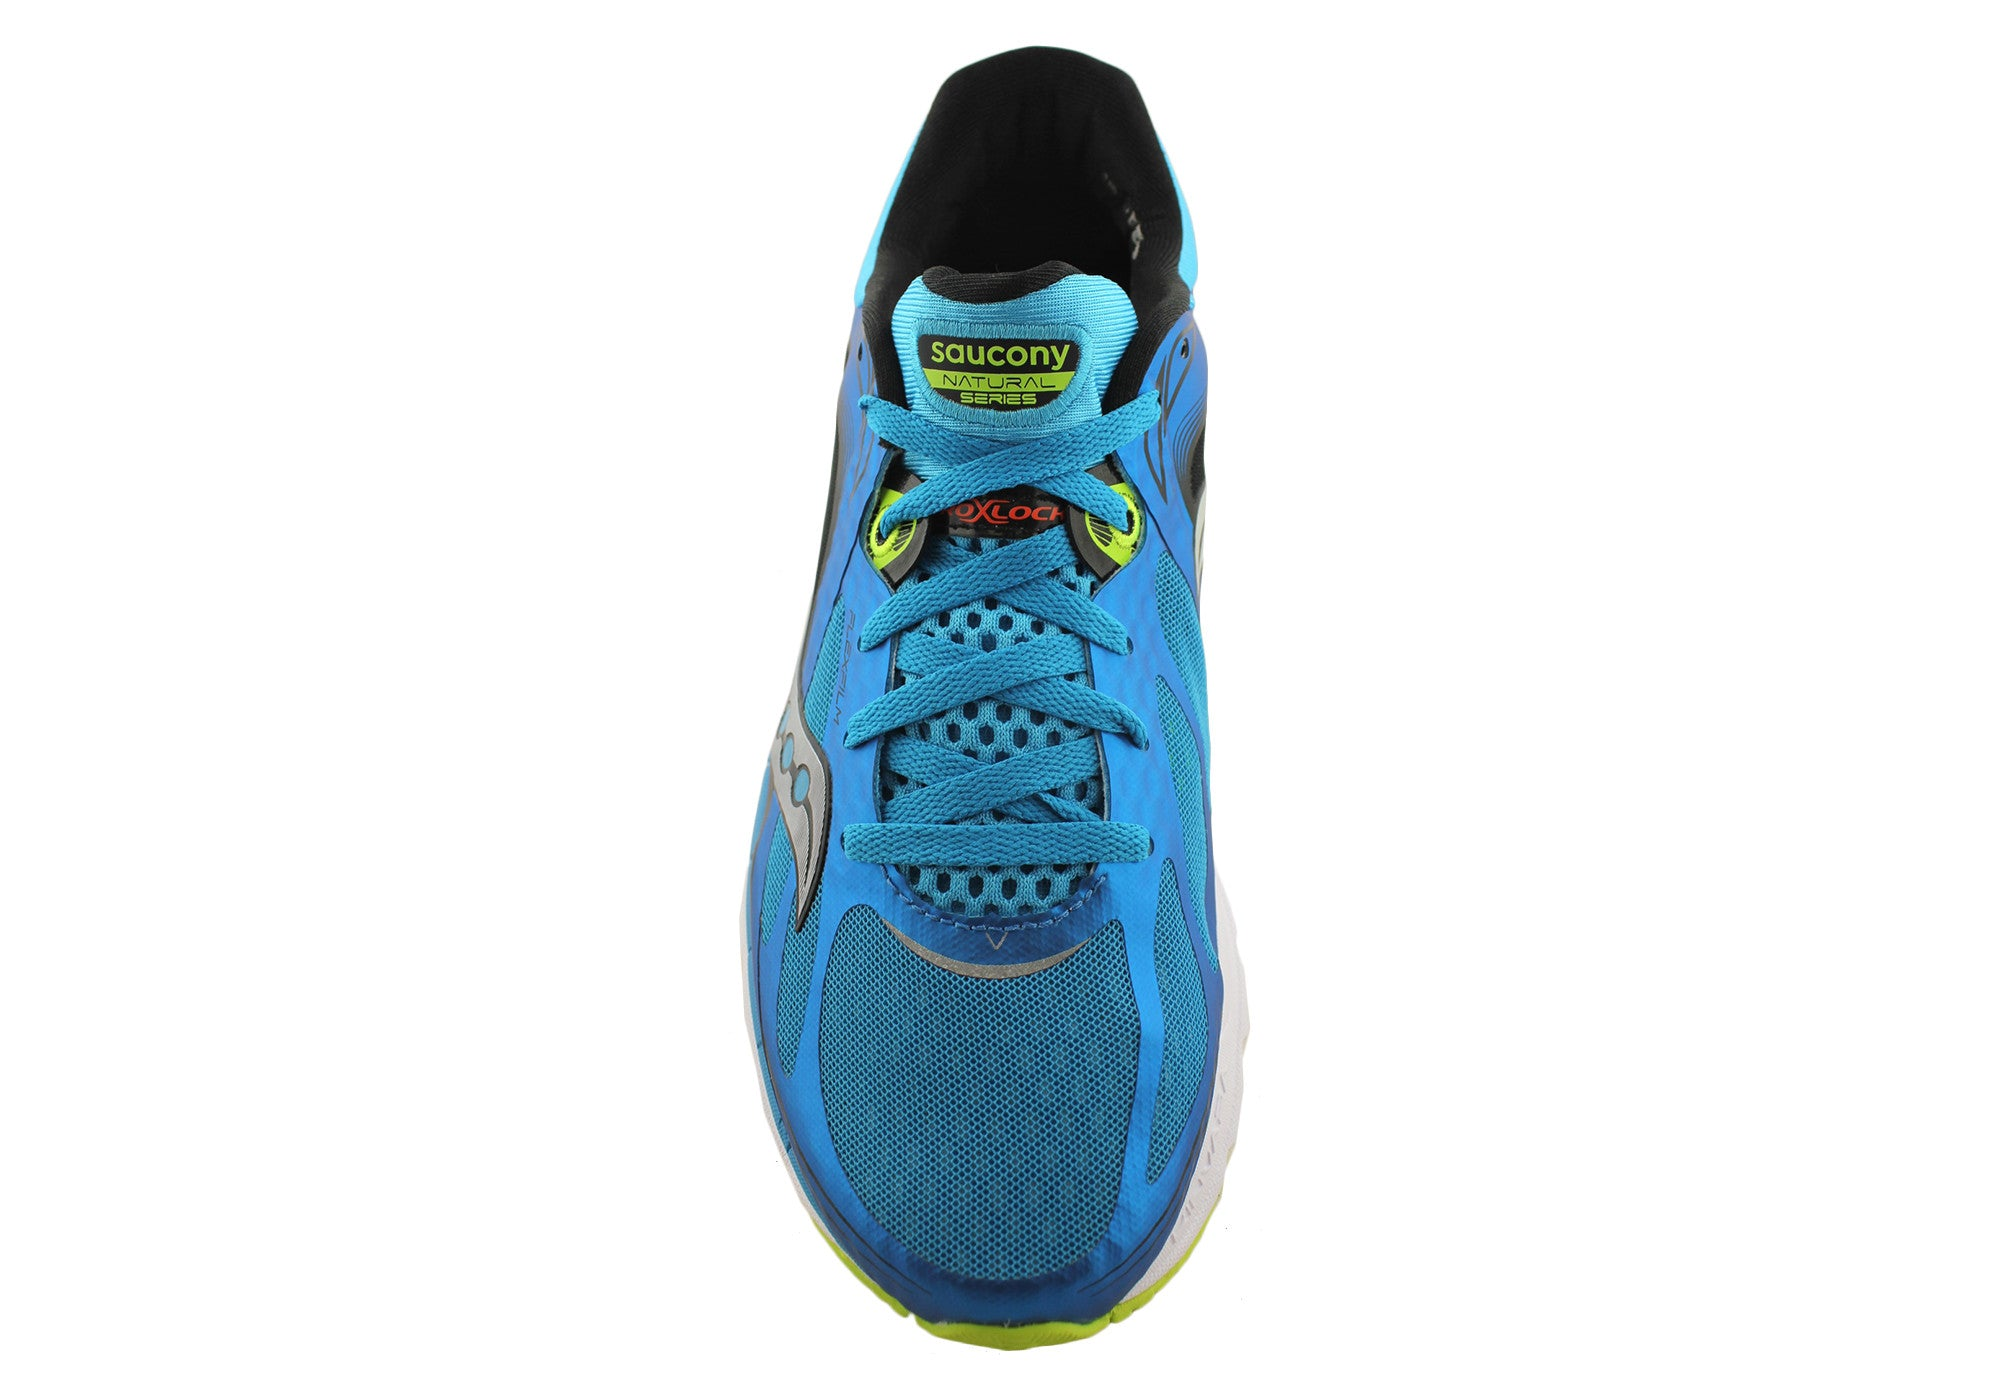 Saucony Kinvara 5 Mens Running Shoes